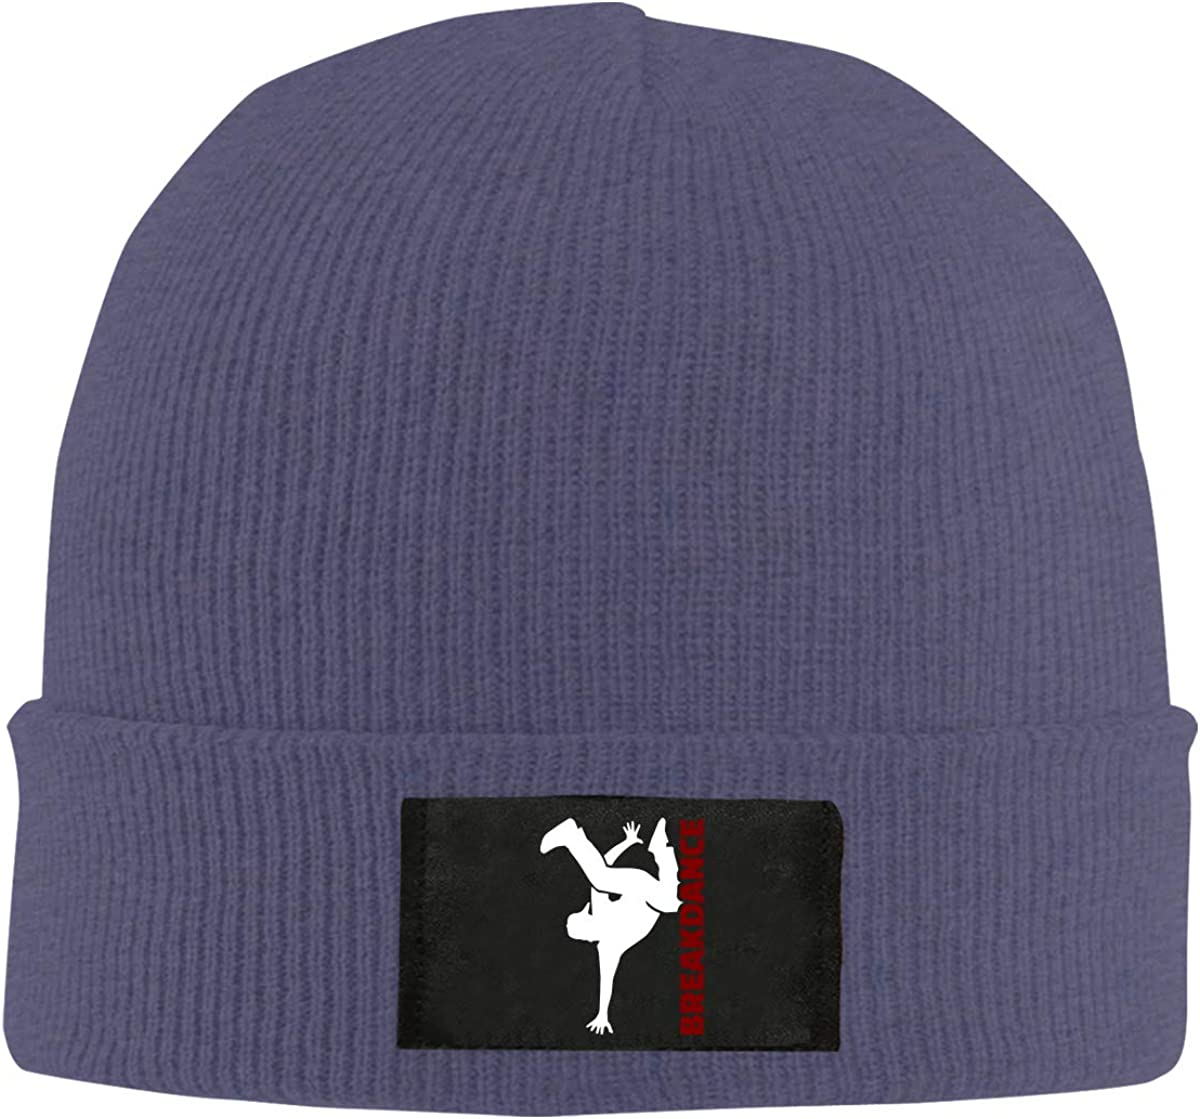 Unisex Breakdance Silhouette Knitted Hat 100/% Acrylic Soft Skiing Cap